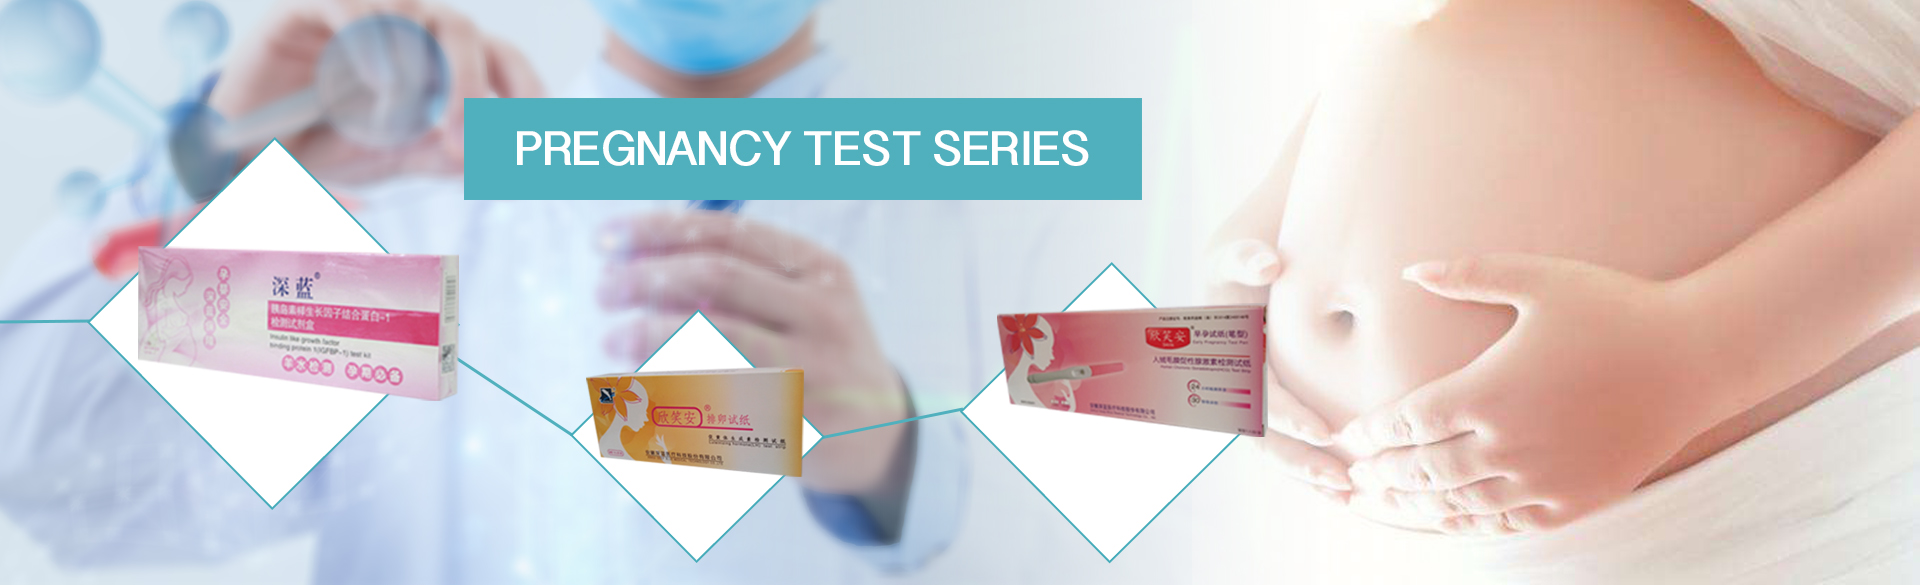 hcg pregnancy test strip